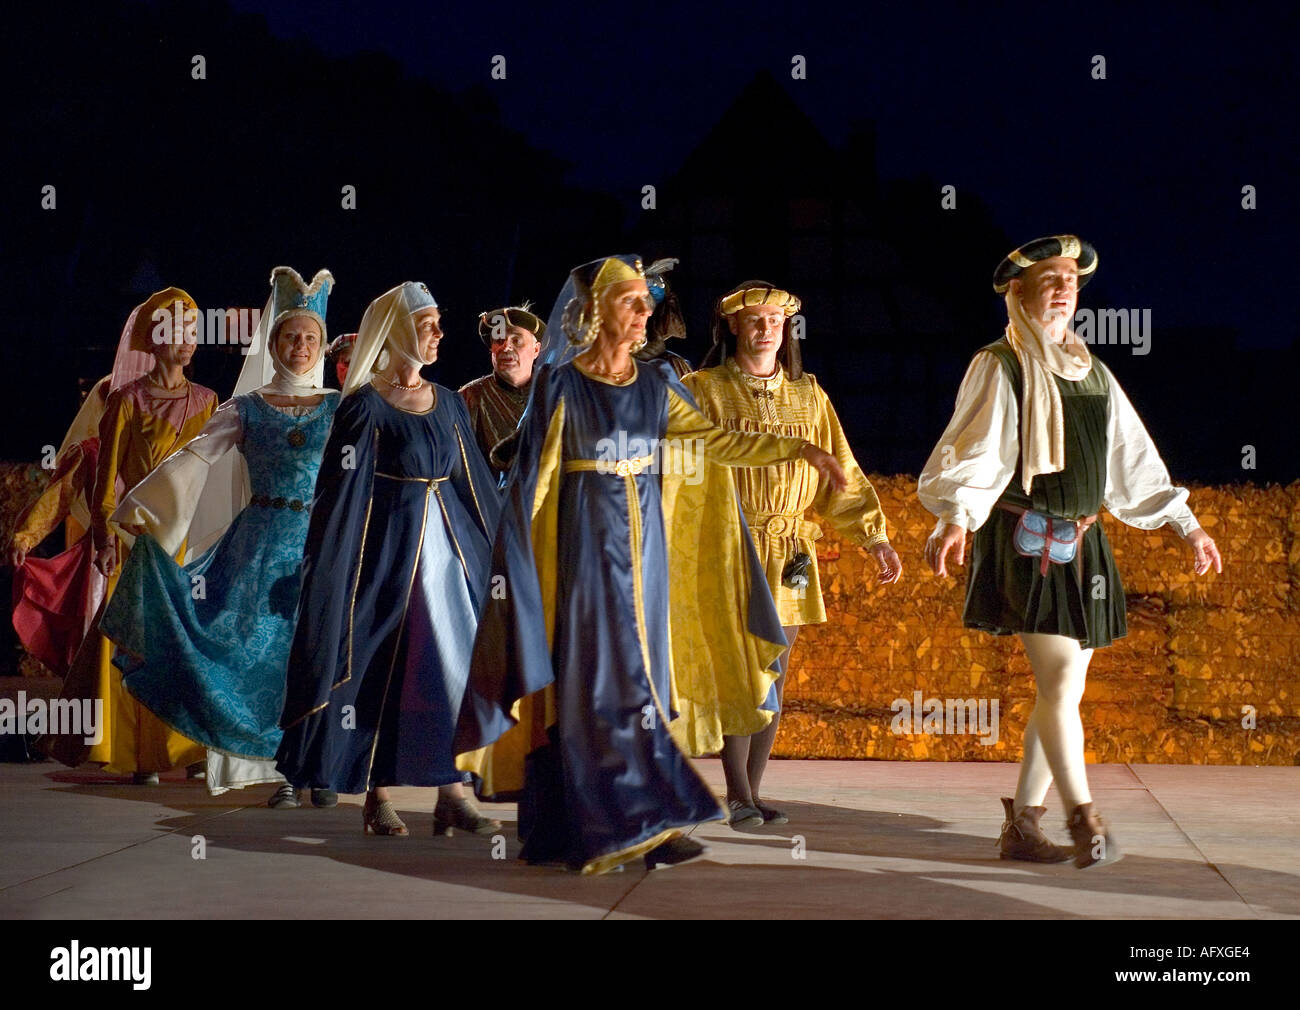 Medieval dancers in France - Stock Image